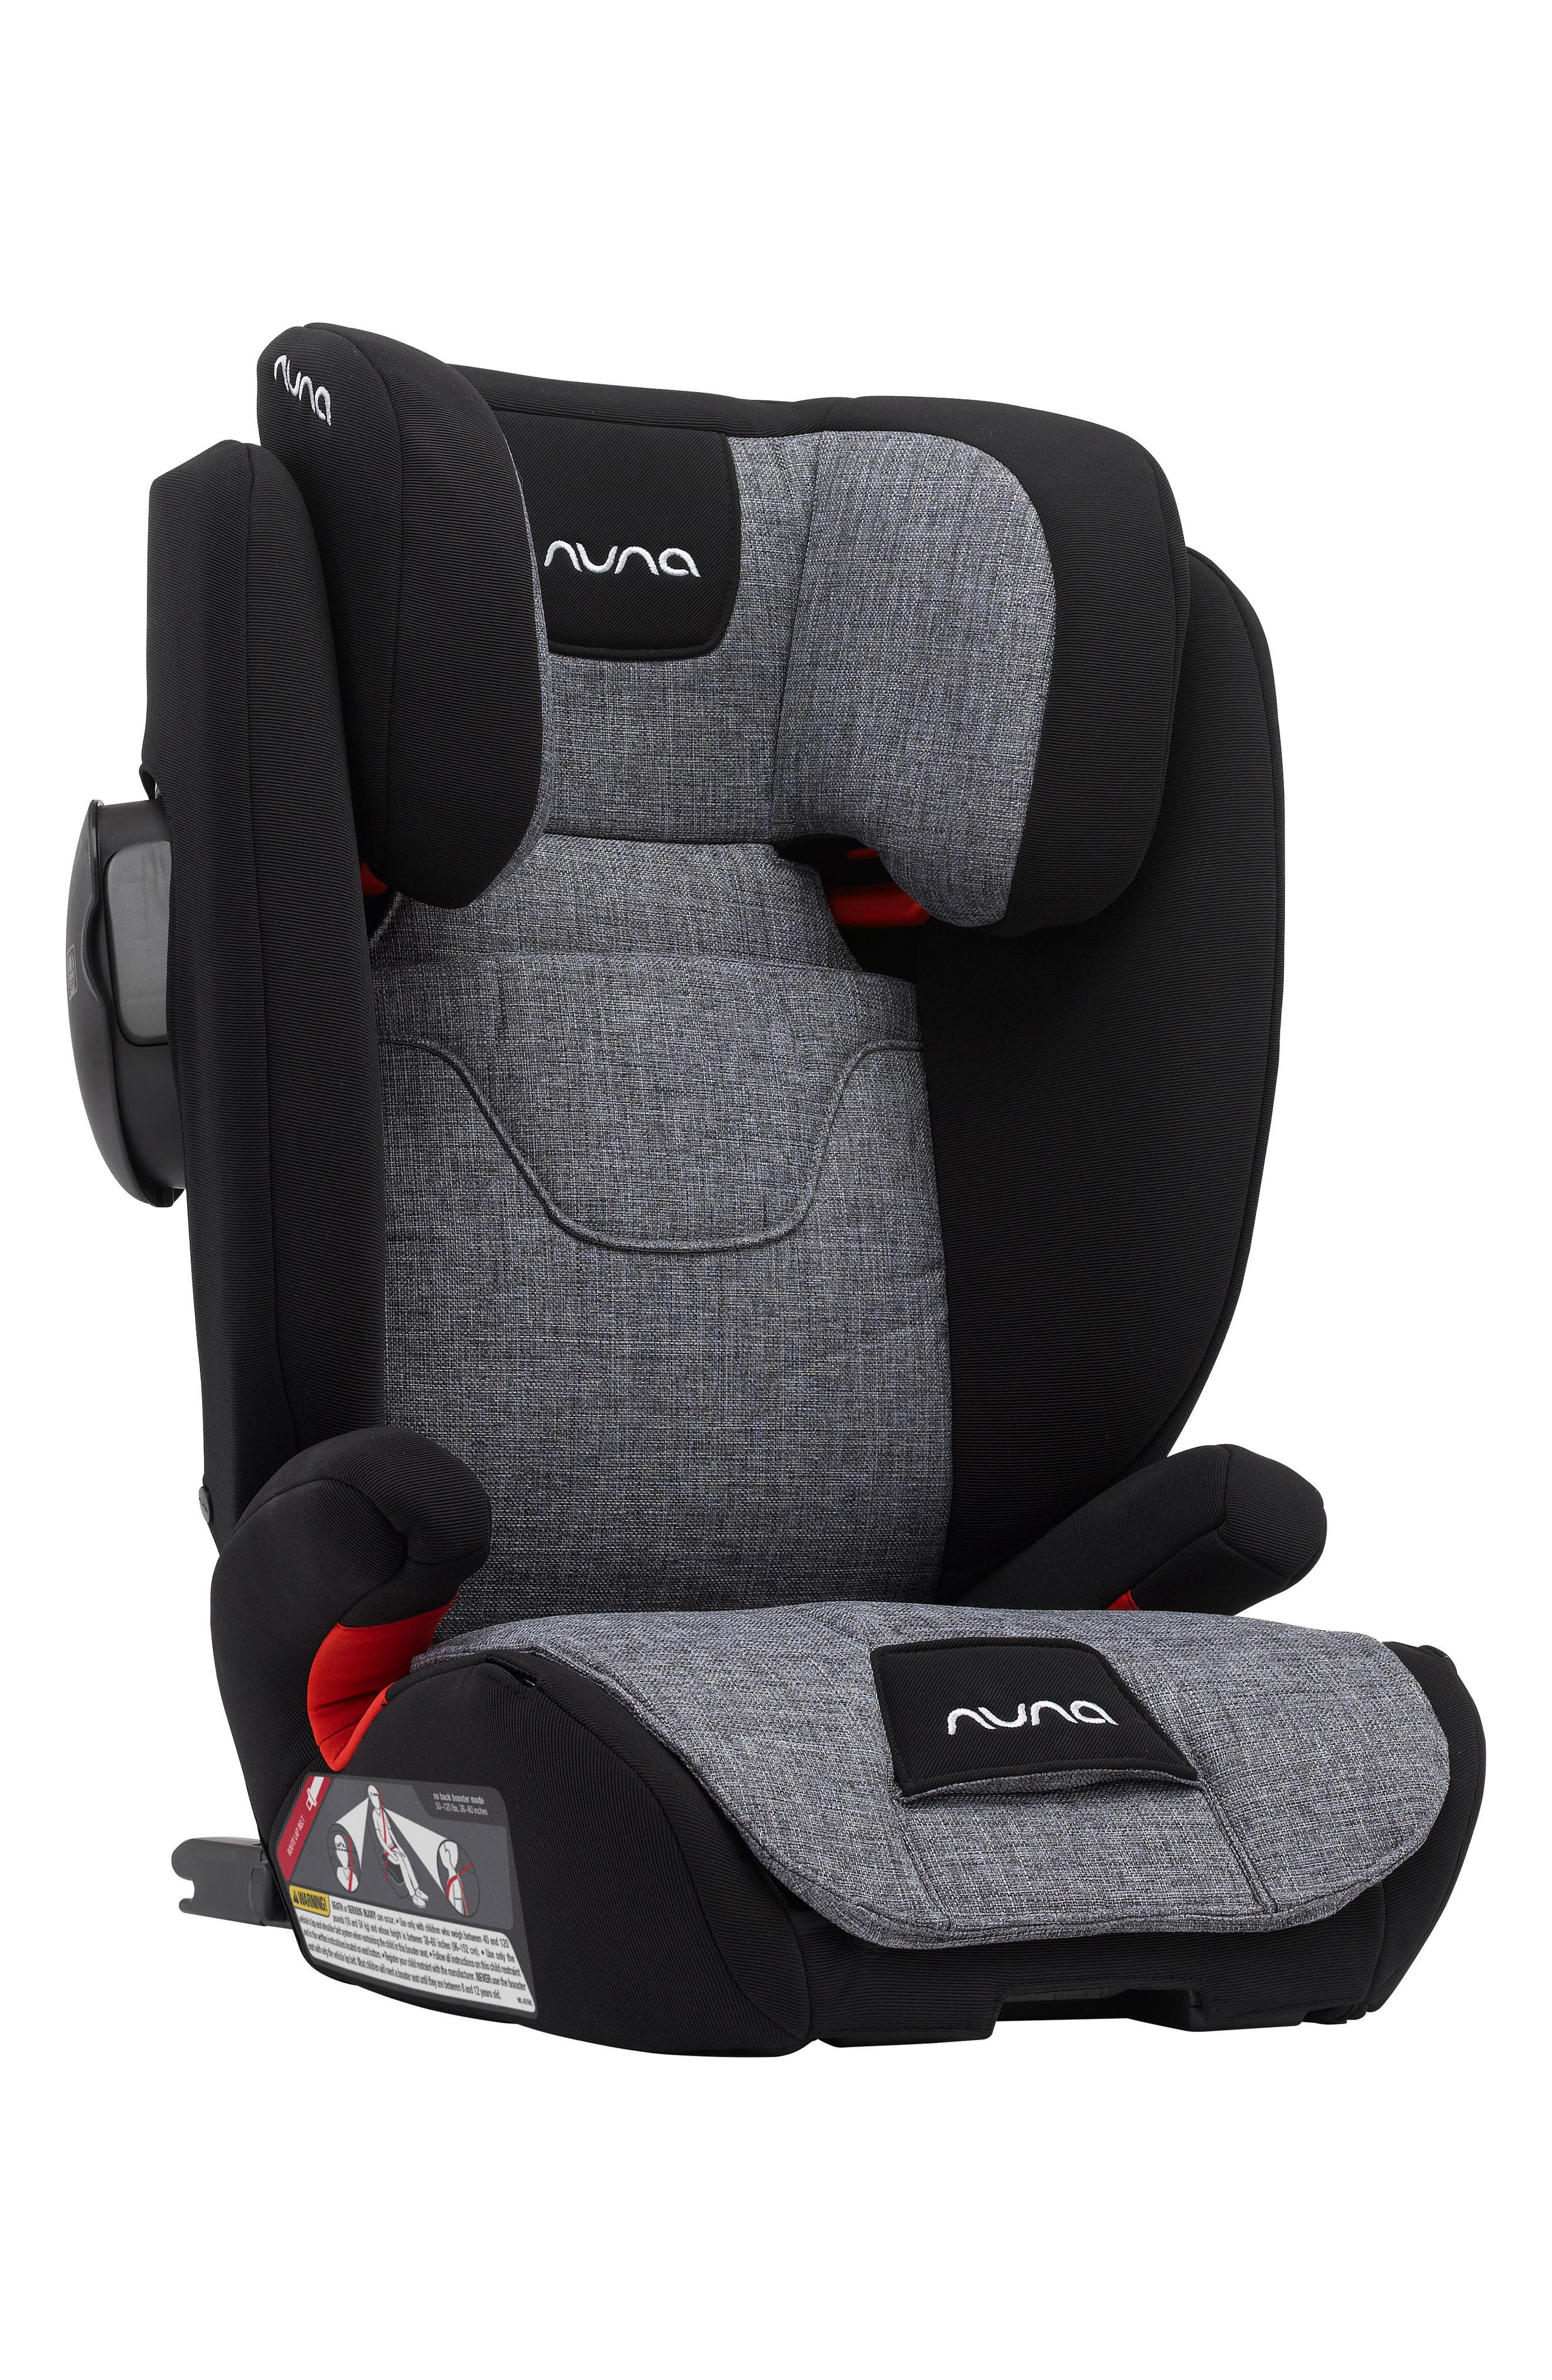 AACE<sup>™</sup> Booster Car Seat,                             Alternate thumbnail 9, color,                             CHARCOAL